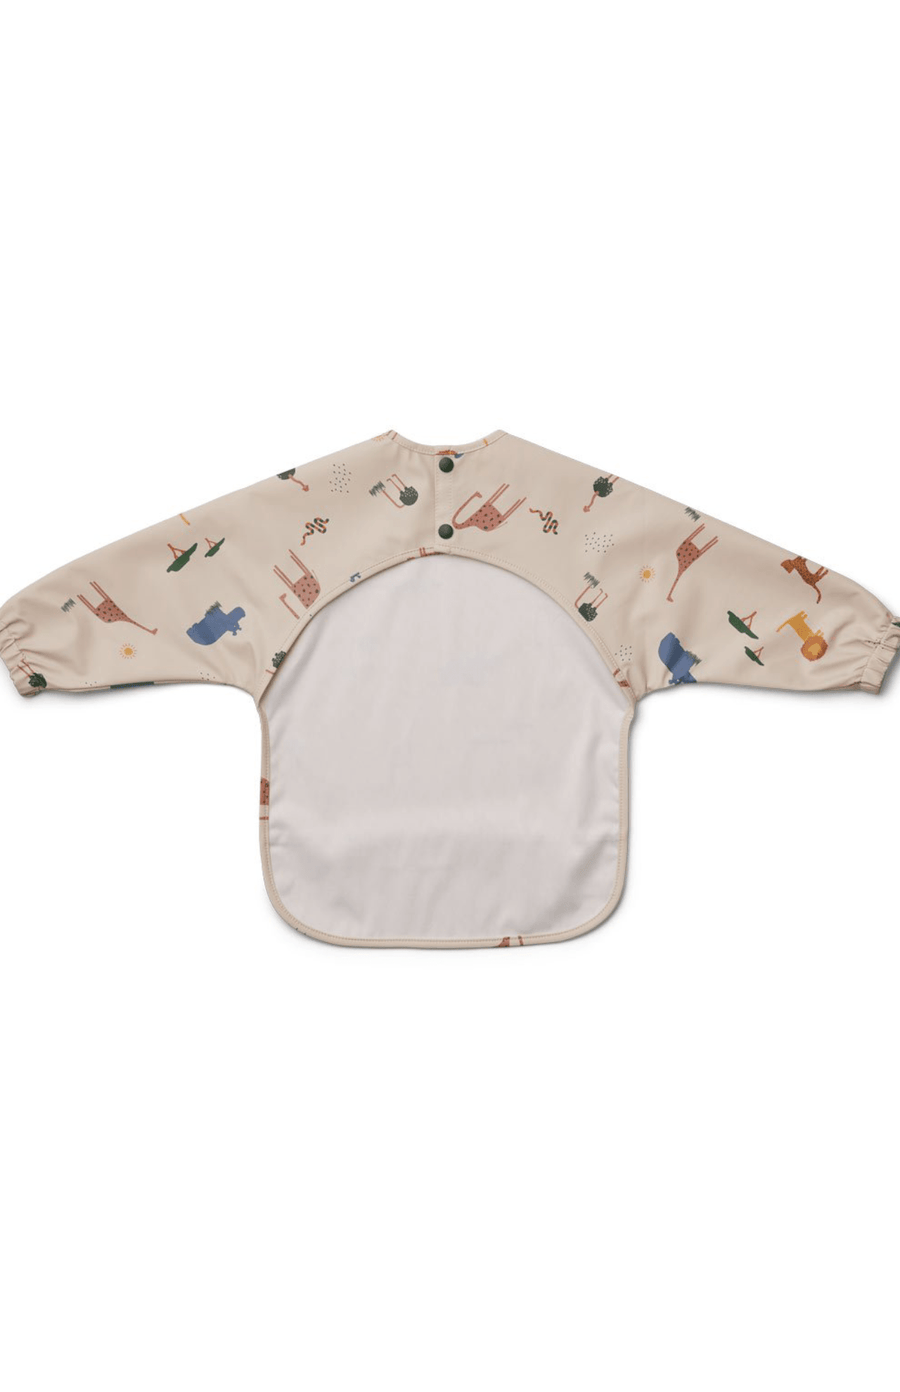 Liewood Merle Cape Bib - Safari Sandy Mix